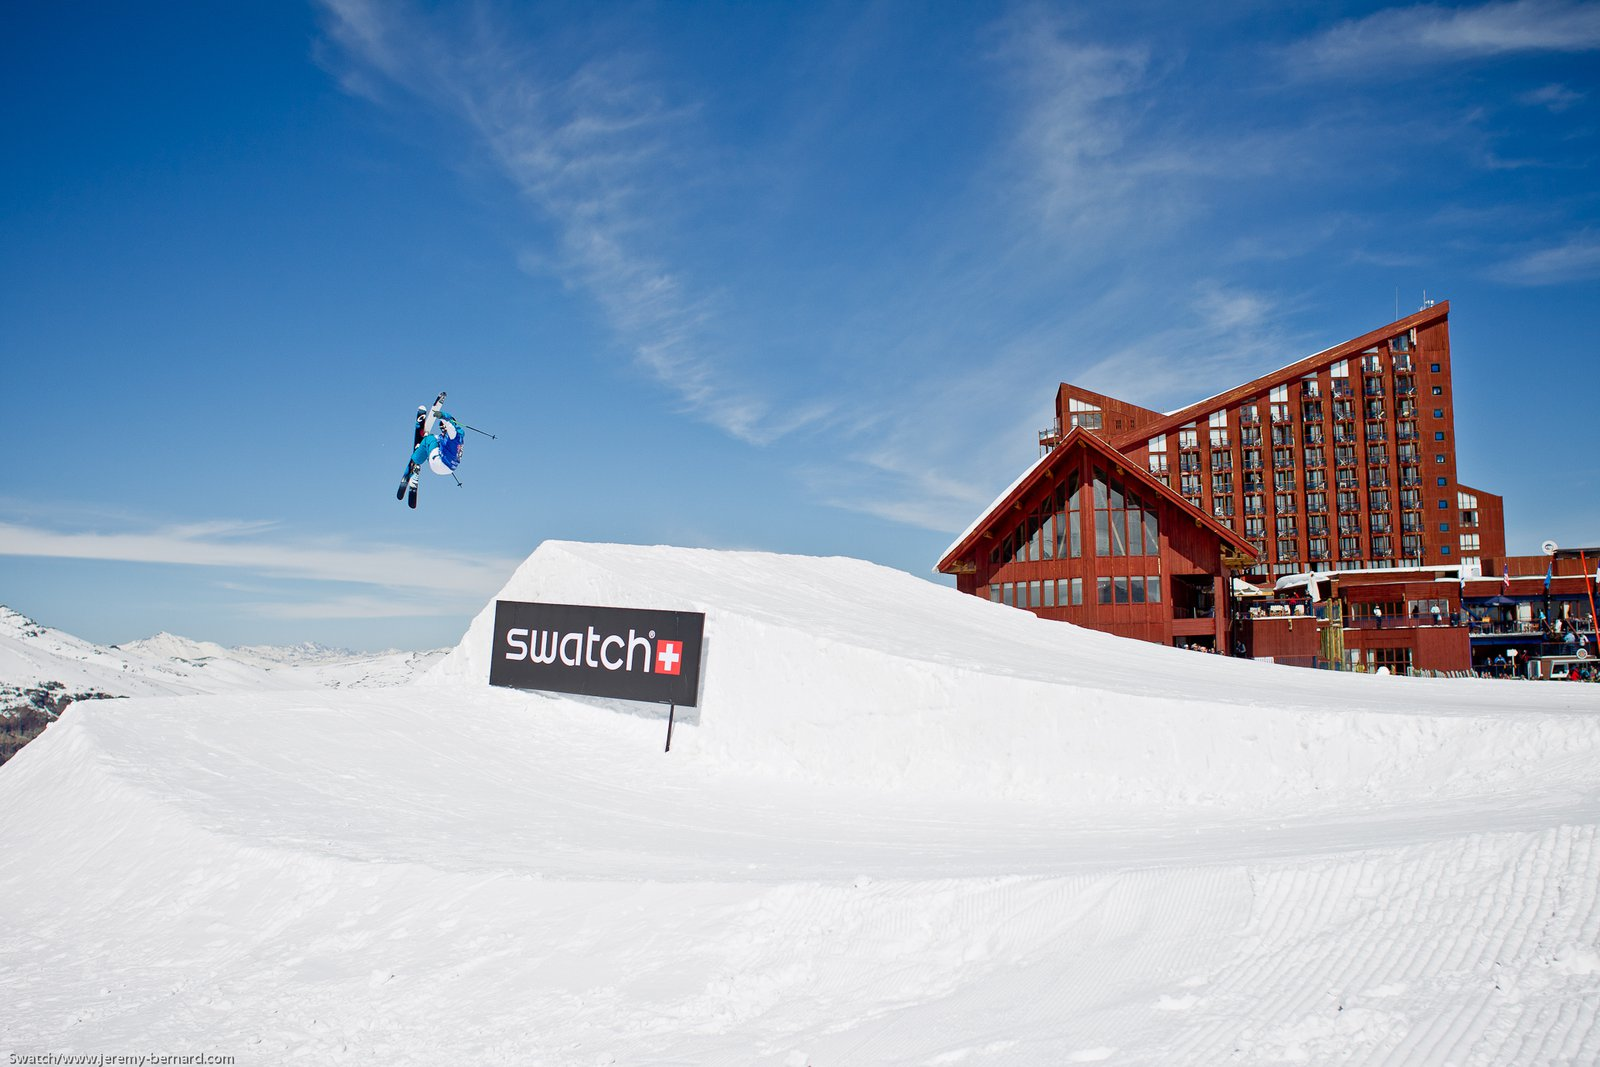 Nicolas Vuignier at the Swatch Skiers Cup